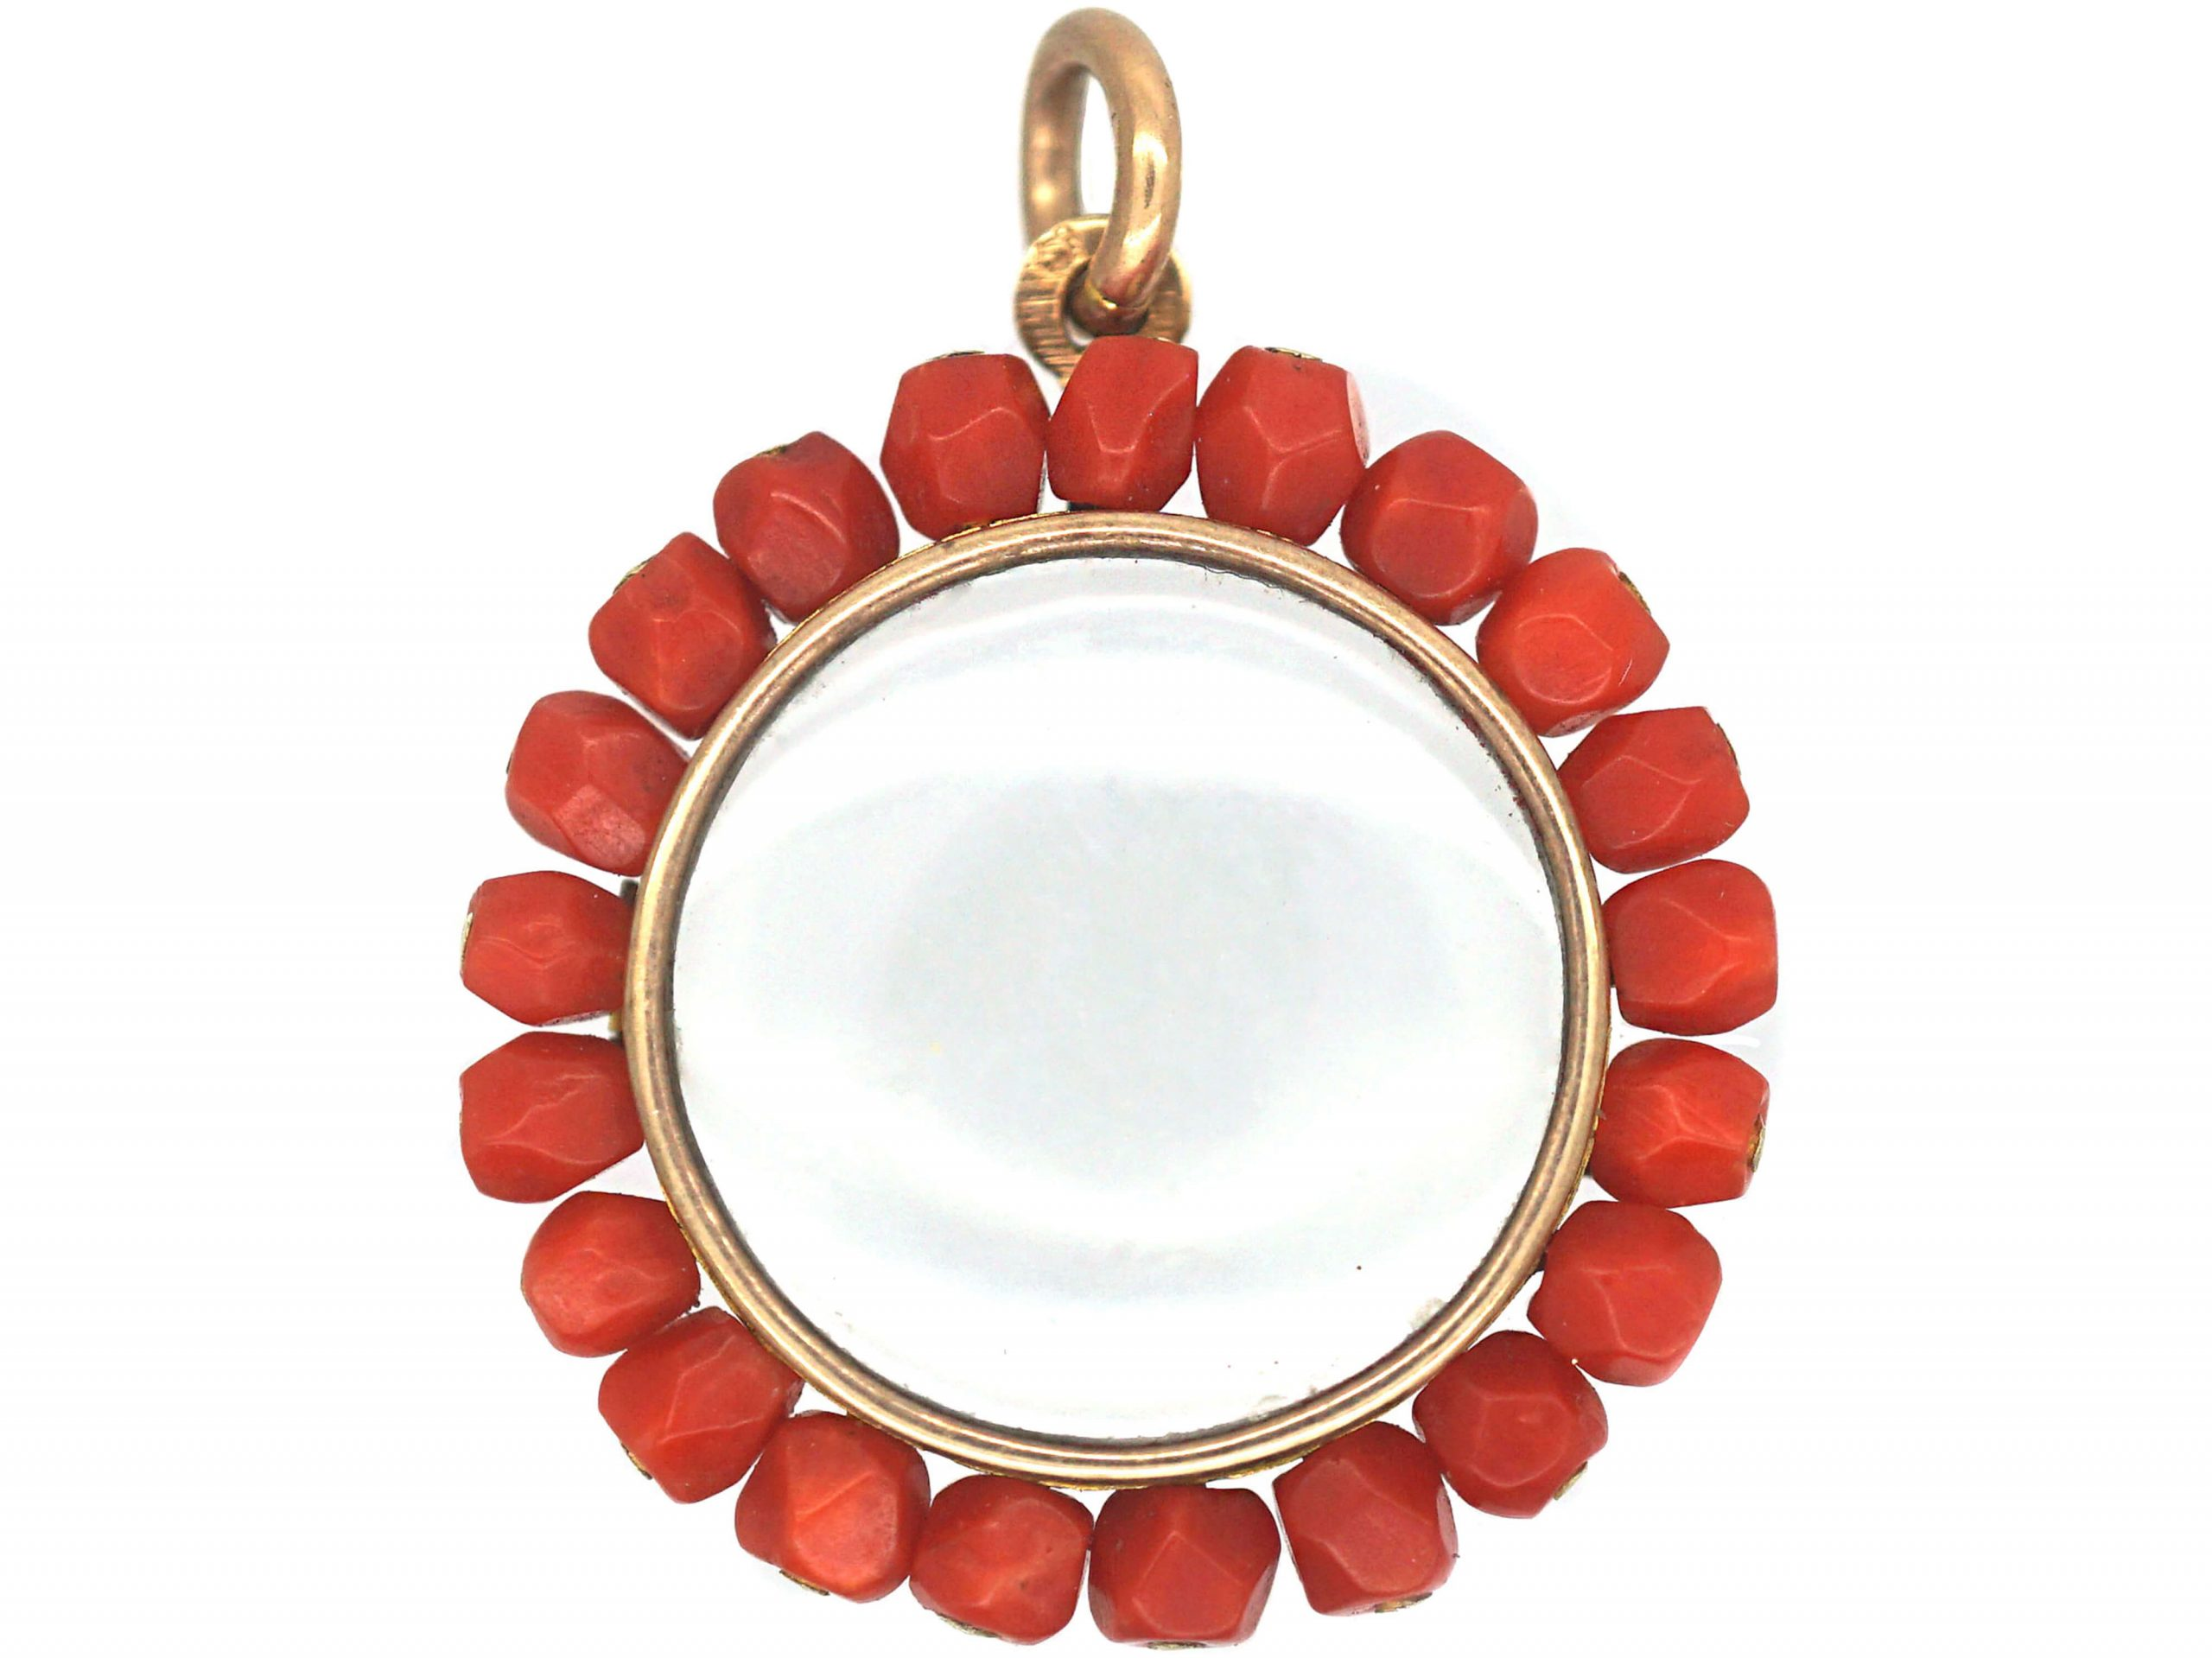 French 19th Century 18ct Gold Round Locket with Coral Border